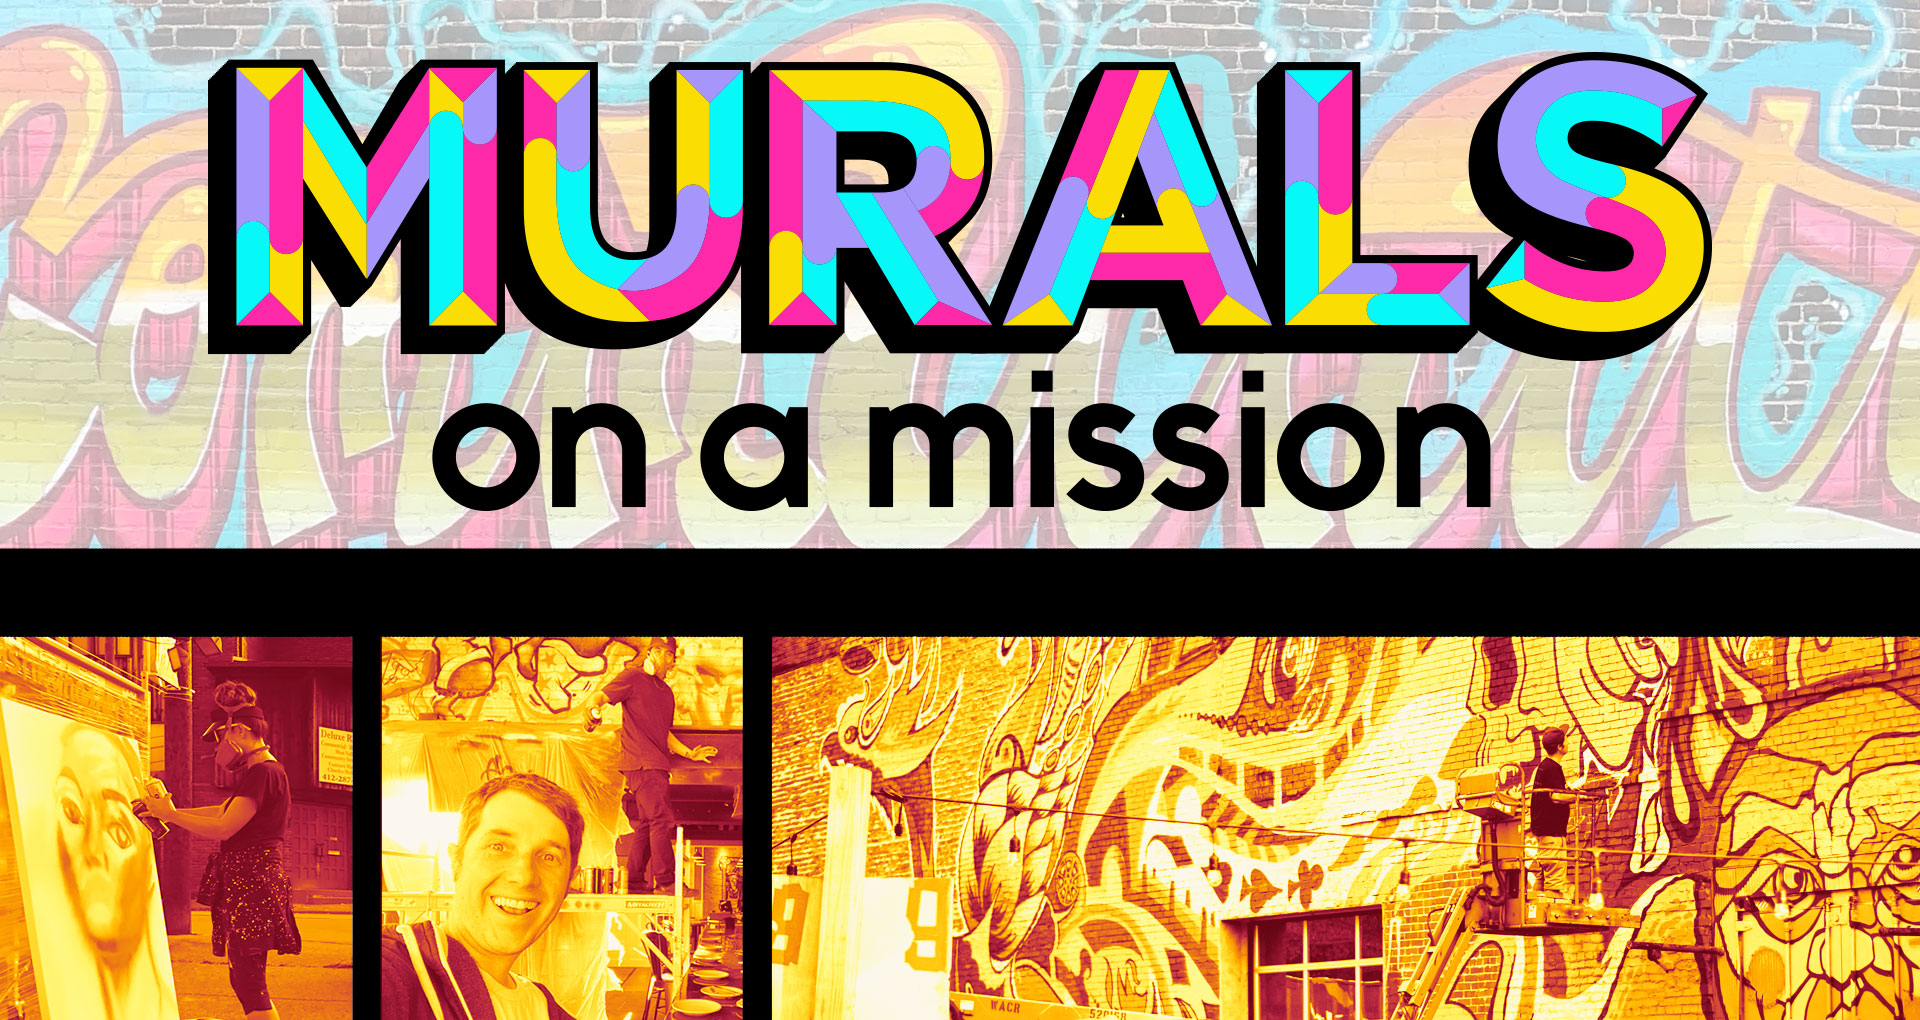 general promo for murals on a mission project